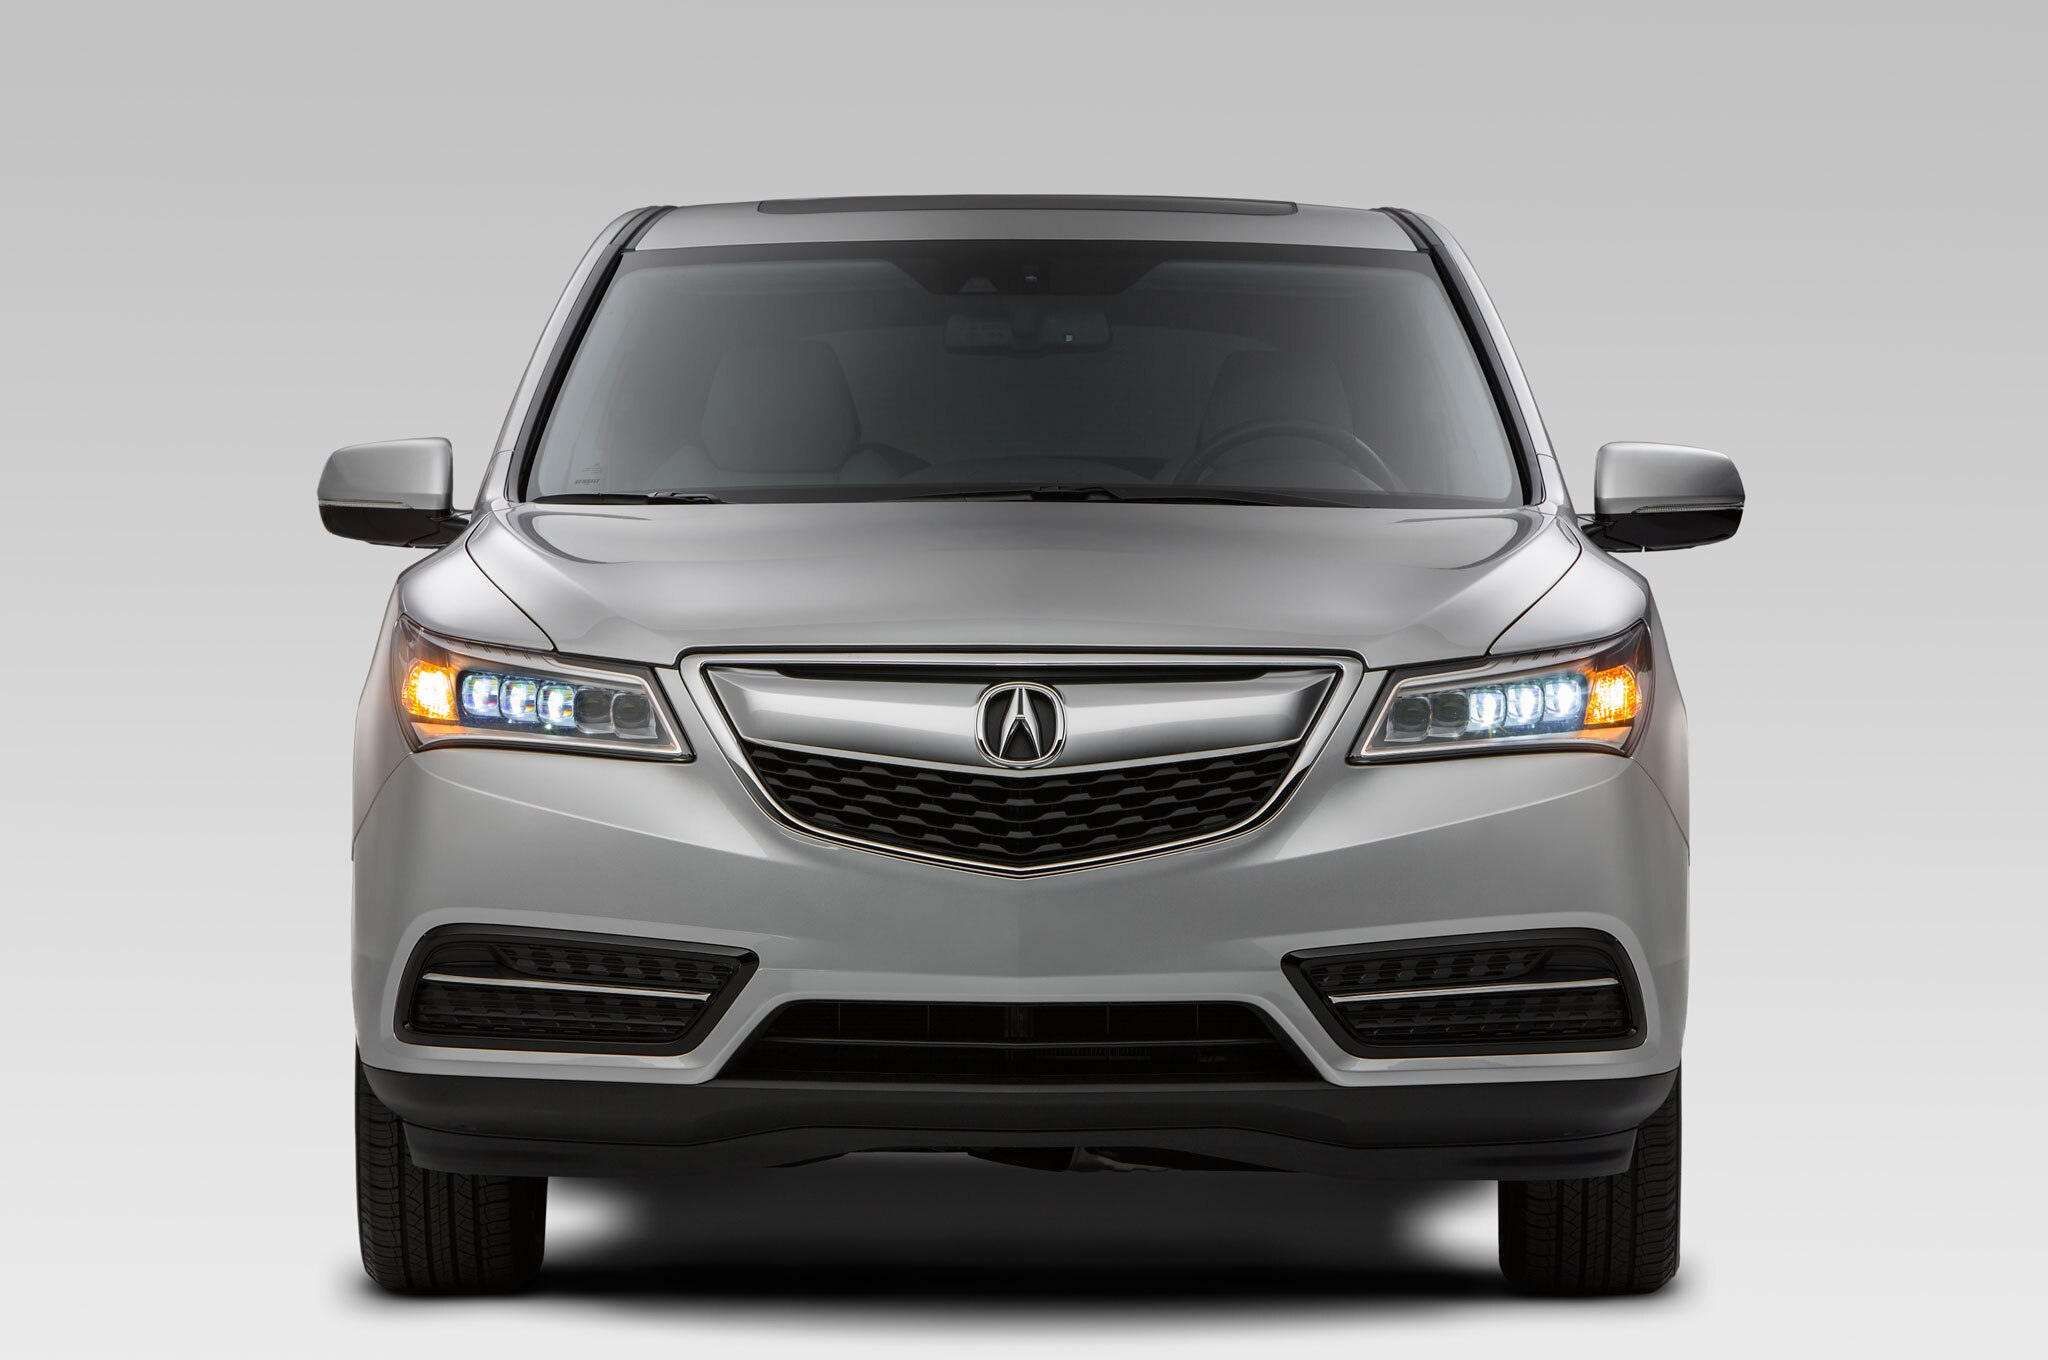 is awd acura review car sh in mdx addition the autoweek a of reviews wonderful price liter article notes